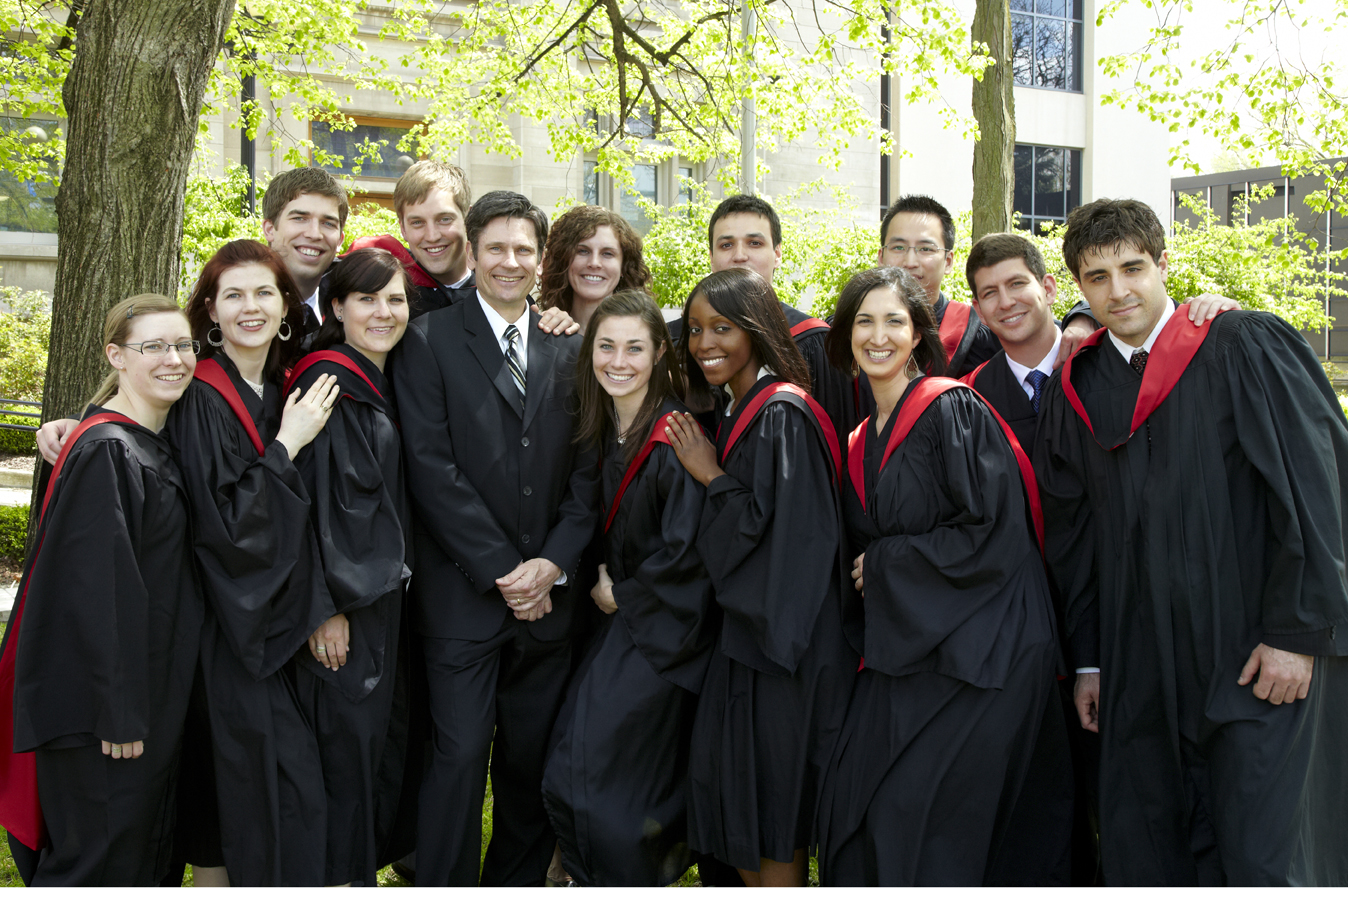 Niagara medical students pose for a photo at graduation ceremony